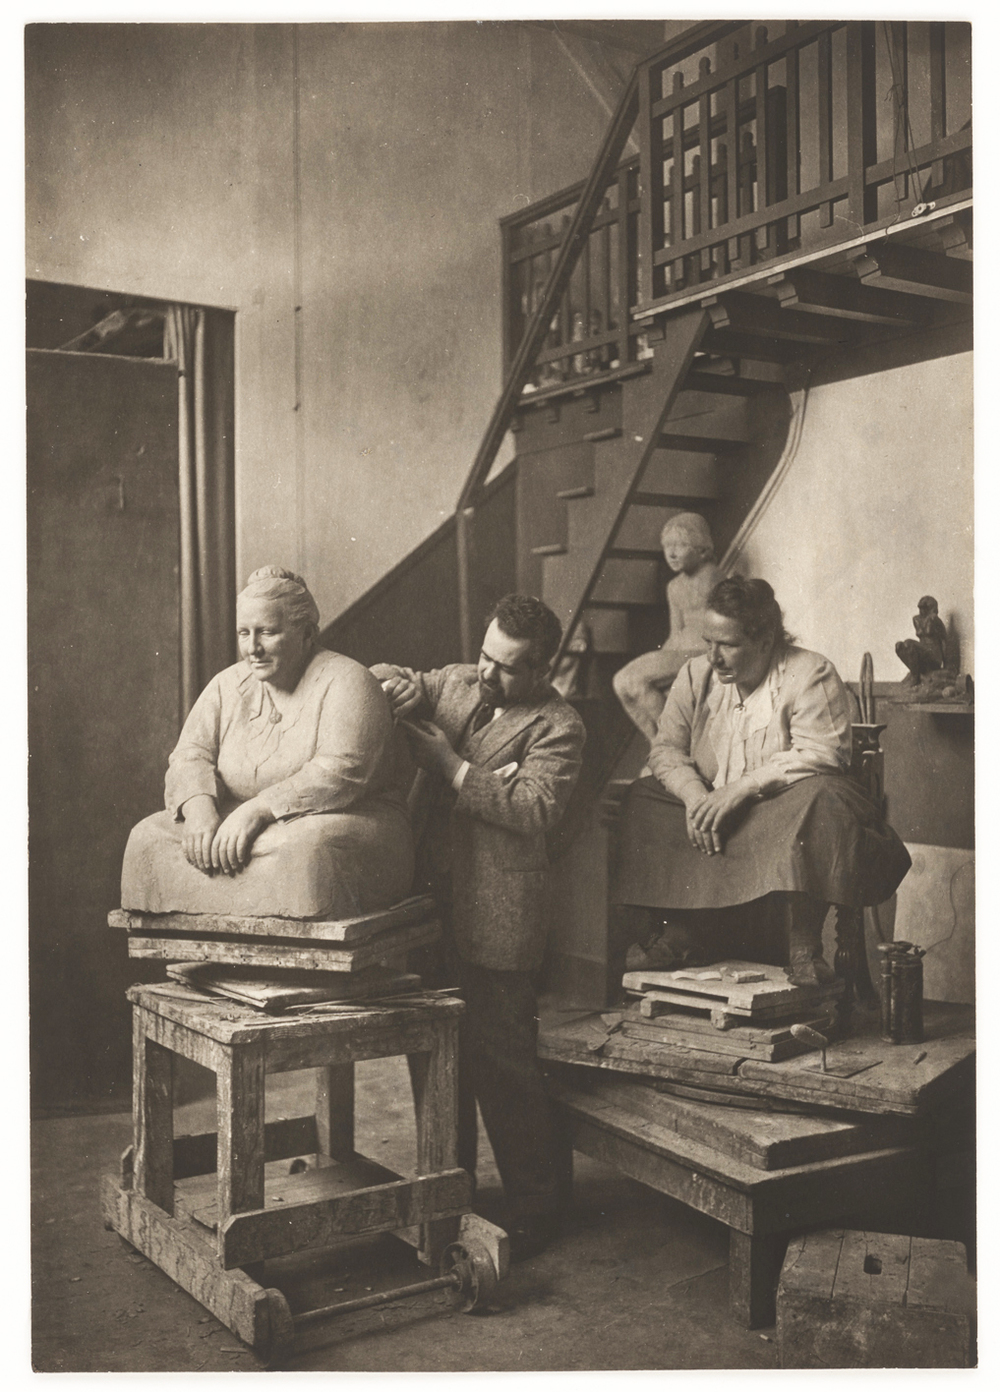 Man Ray, Gertrude Stein posing for Jo Davidson, 1922, gelatin silver print. Courtesy of the National Portrait Gallery, Smithsonian Institution, © 2010 Man Ray Trust / Artists Rights Society (ARS), New York / ADAGP, Paris.